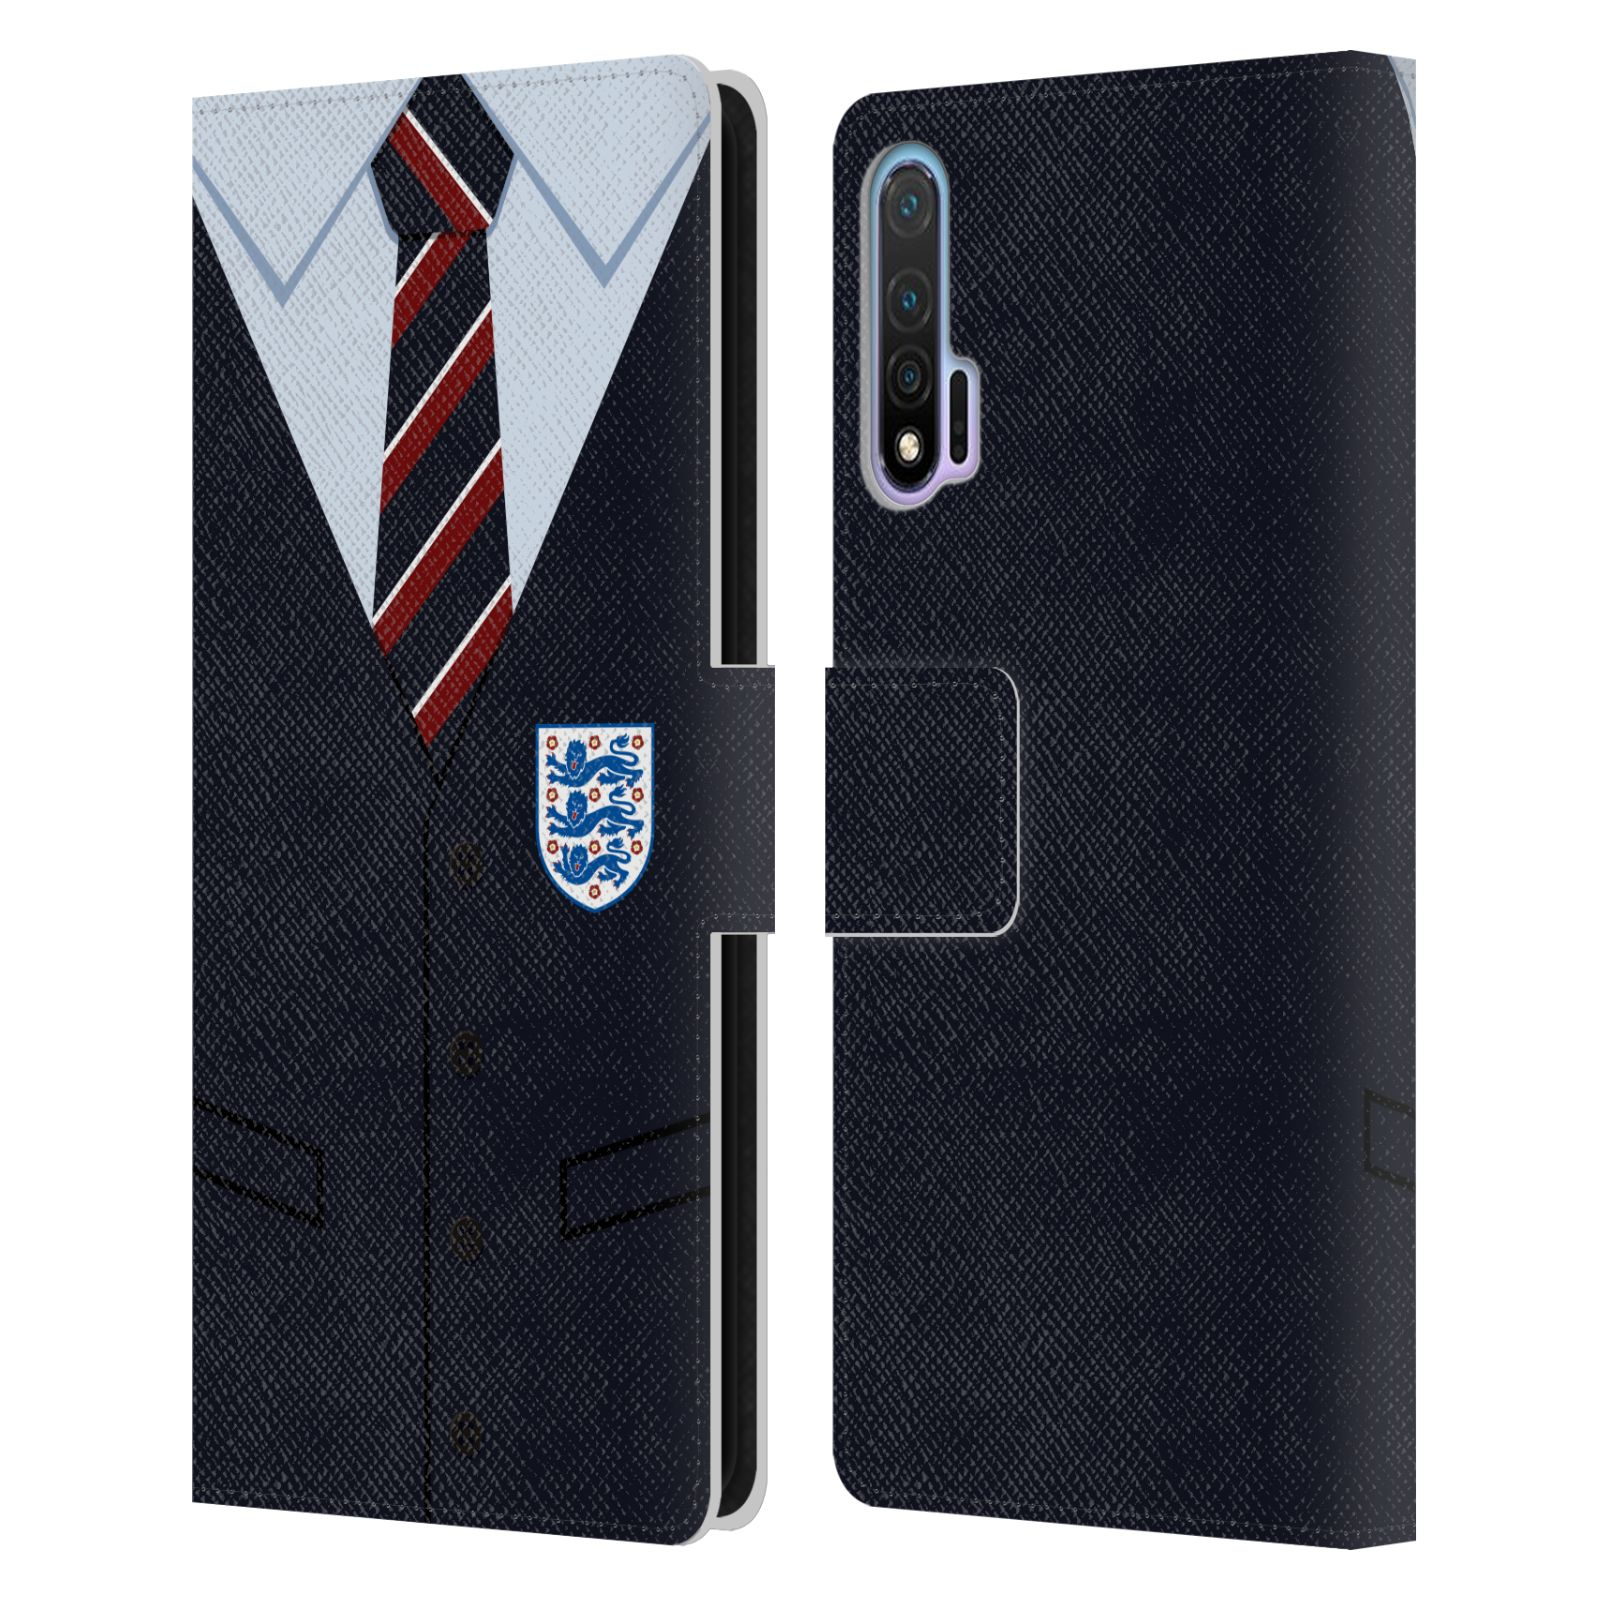 Official England National Football Team 2018/19 Crest Southgate Waistcoat Leather Book Wallet Case For Huawei Nova 6 5G